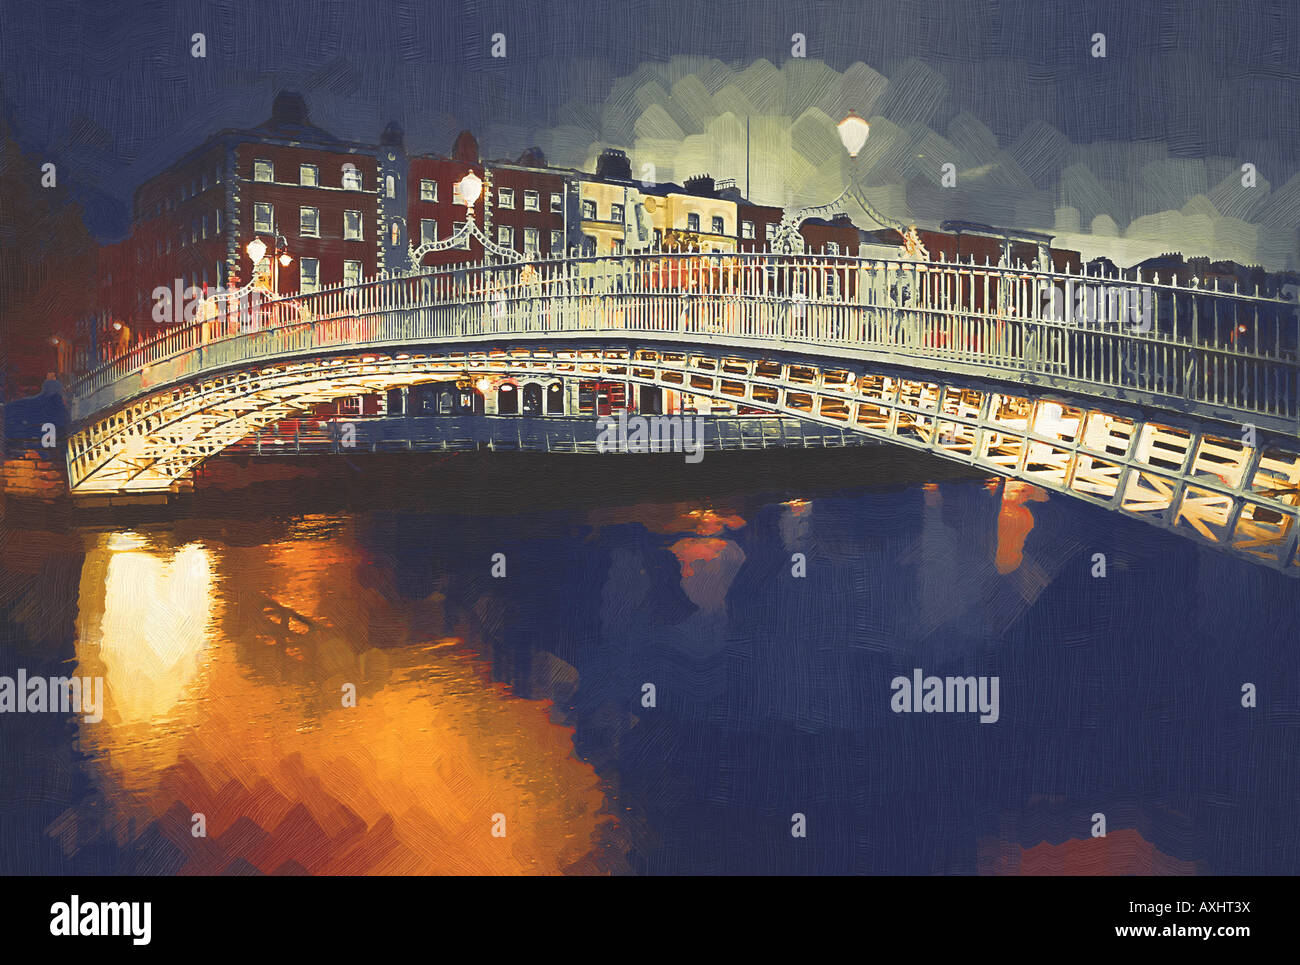 digital painting from photo of well known dublin landmark at twilight - Stock Image